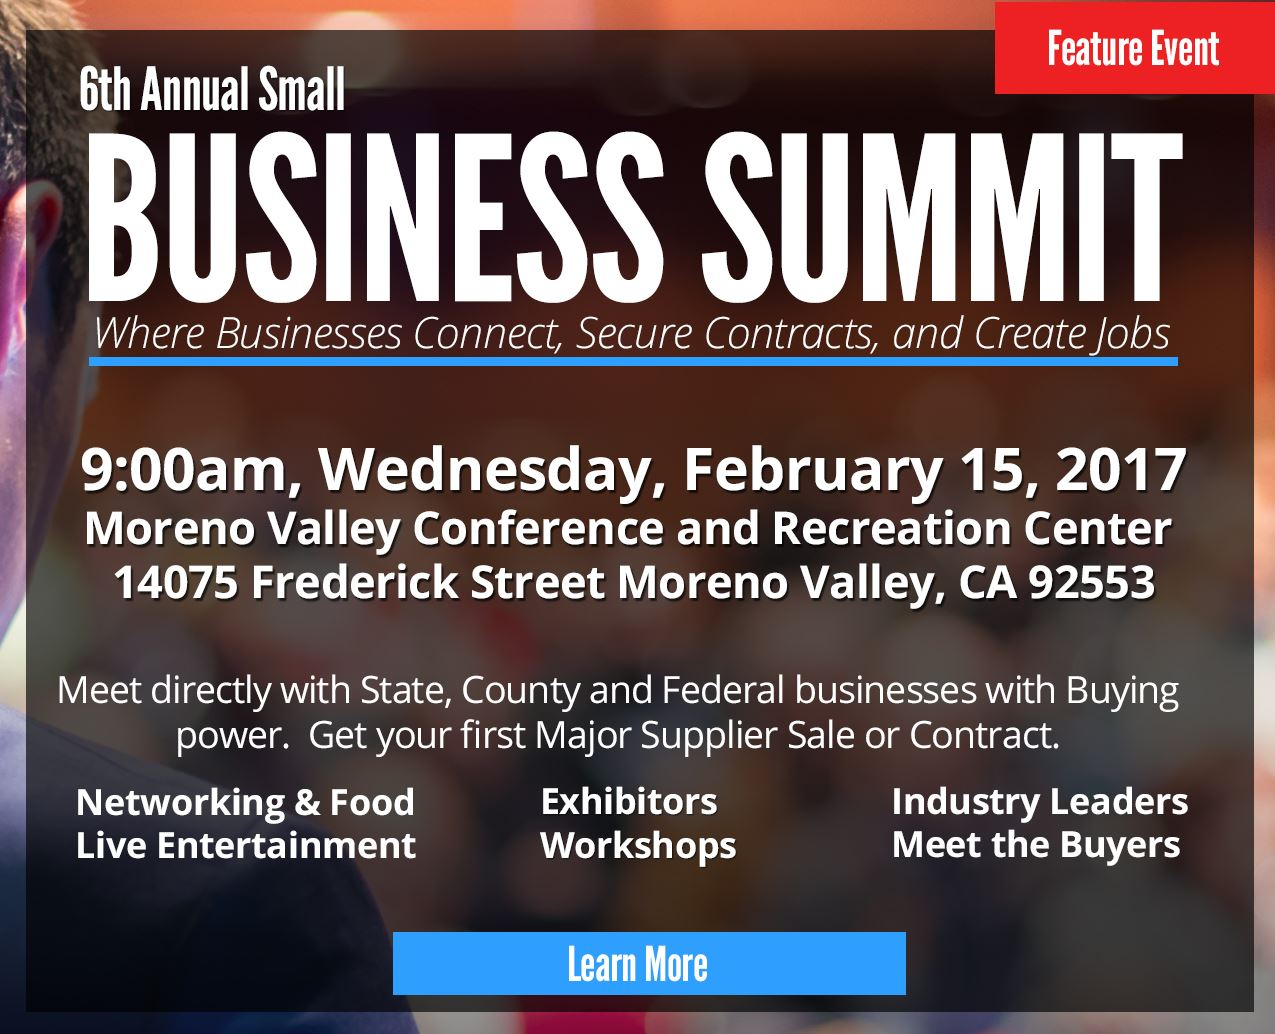 Meet directly with State, County and Federal businesses with Buying power. Get your first Major Supplier Sale or Contract. 900am, Wednesday, February 15, 2017 Moreno Valley Conference and Recreation Center 14075 Frederick Street Moreno Valley, CA 92553